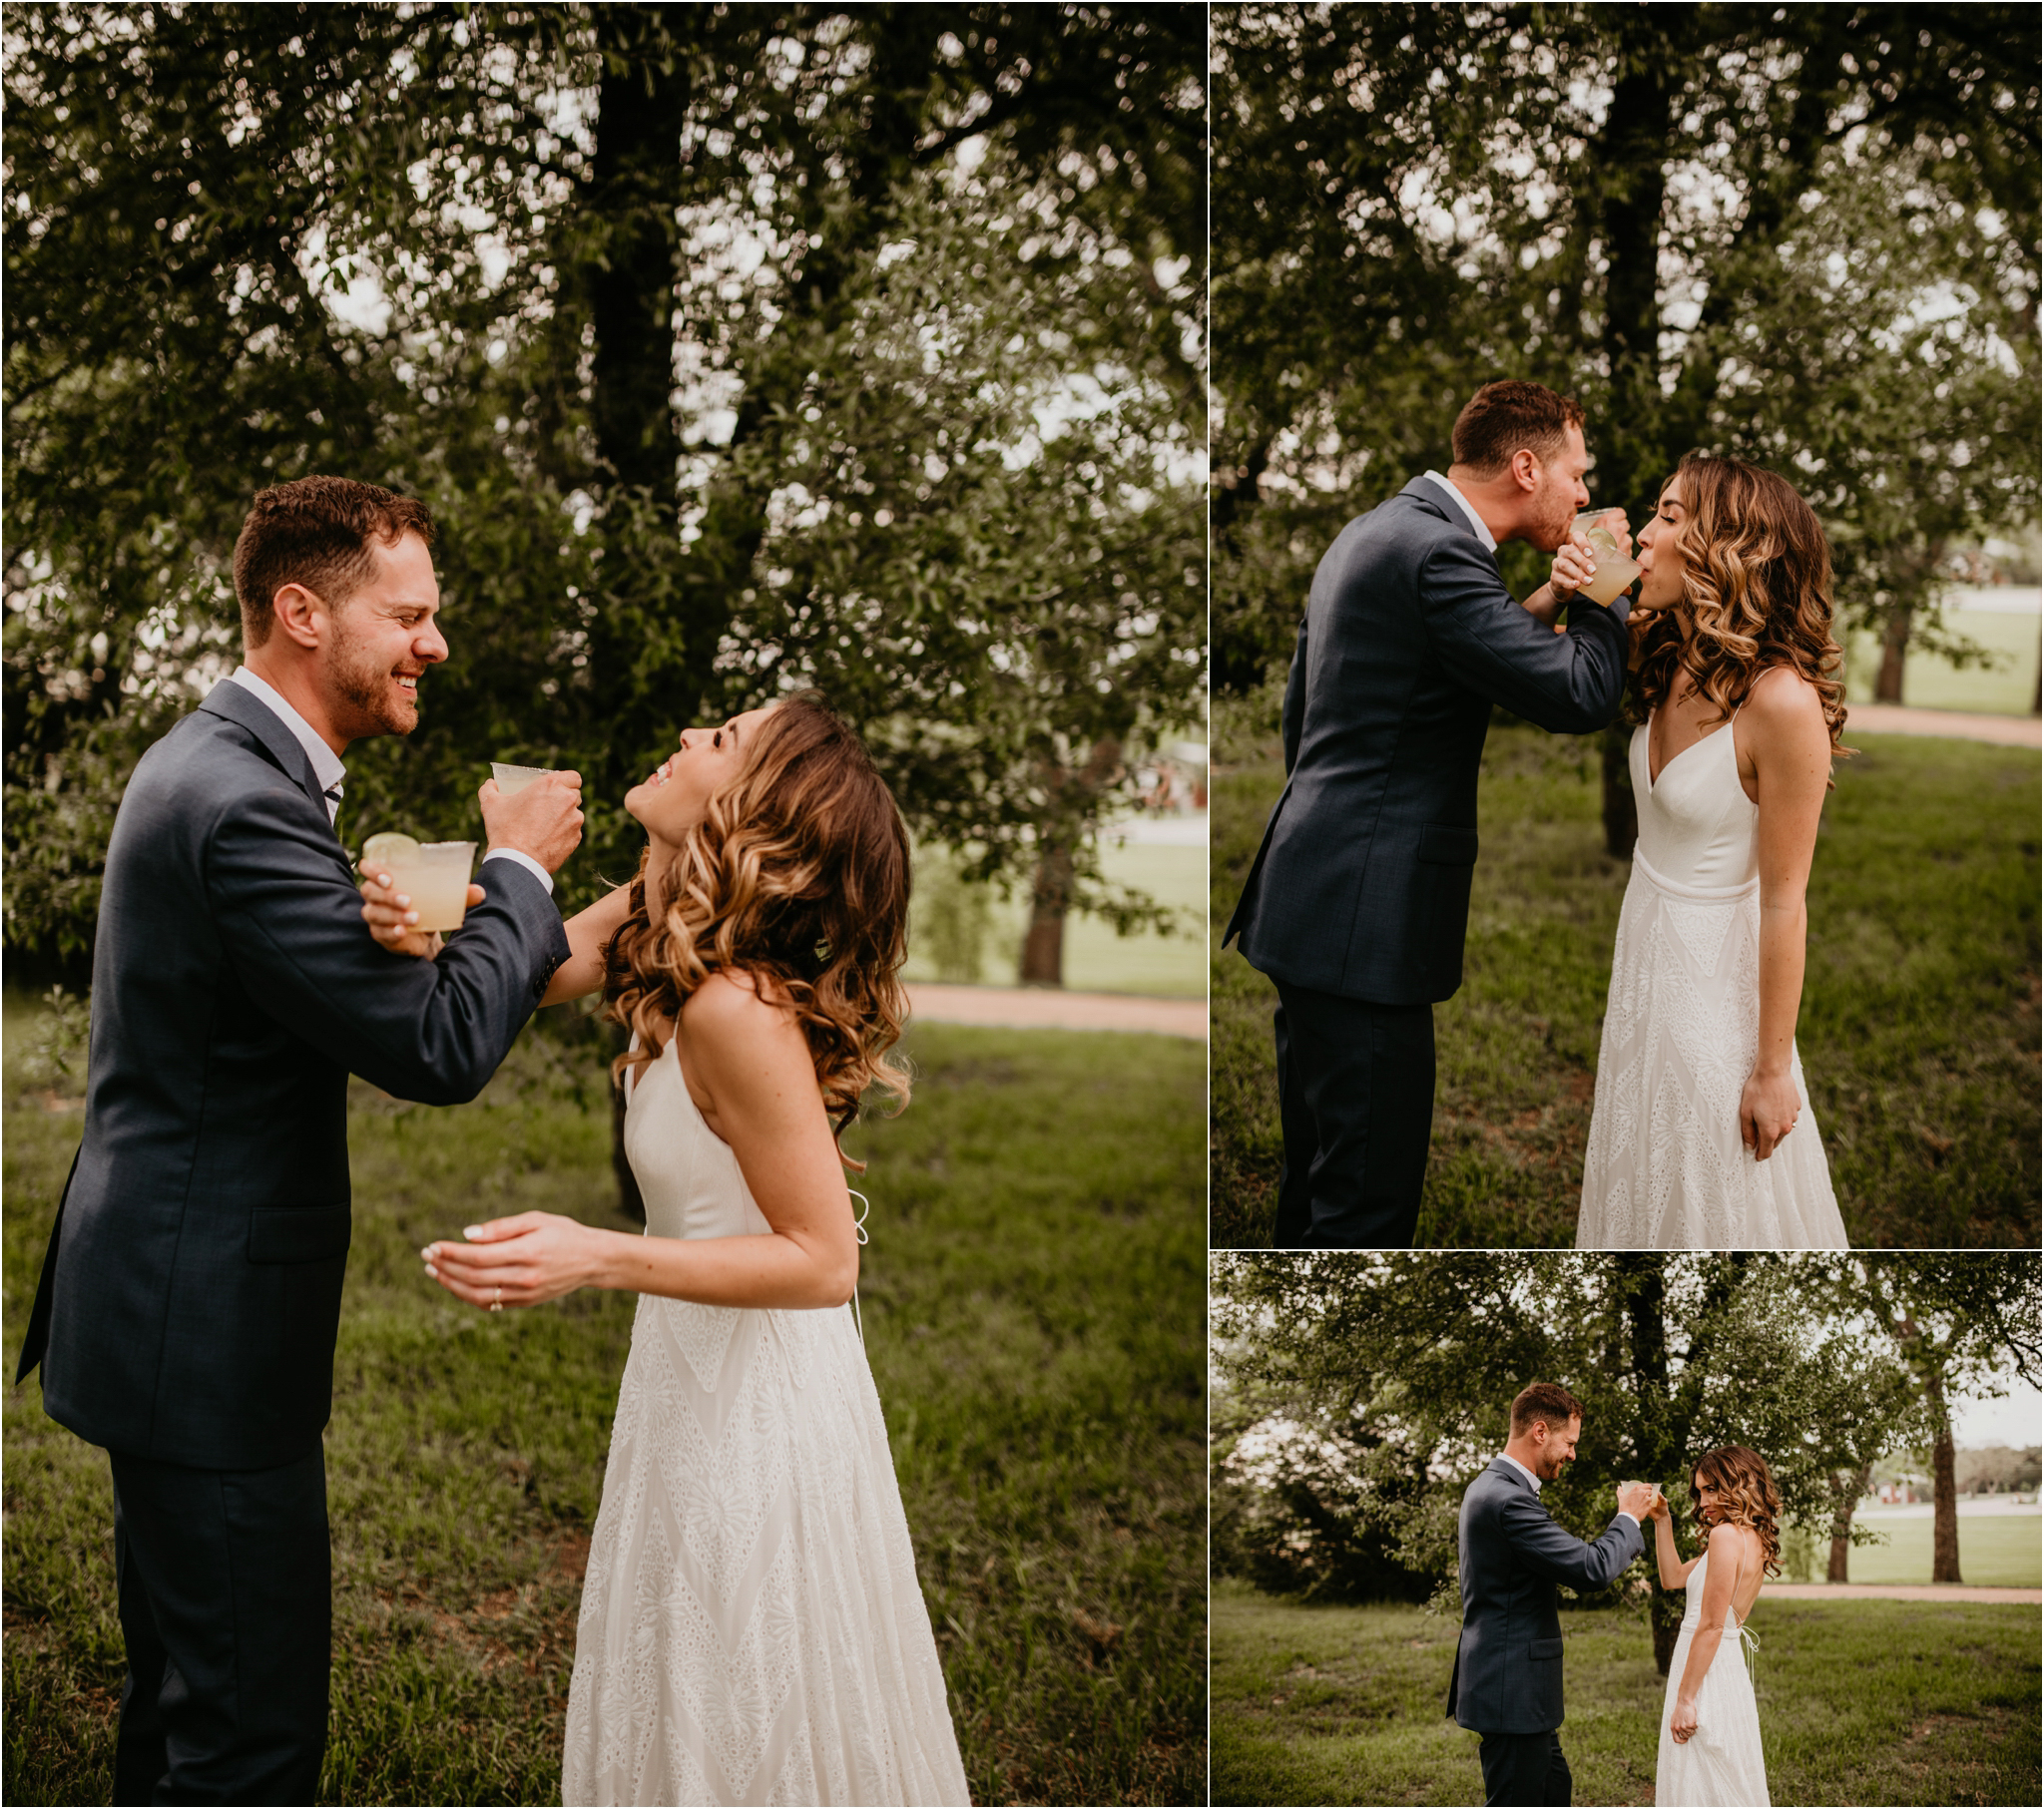 jillian-and-scott-pecan-springs-ranch-texas-and-washington-wedding-photographer-095.jpg